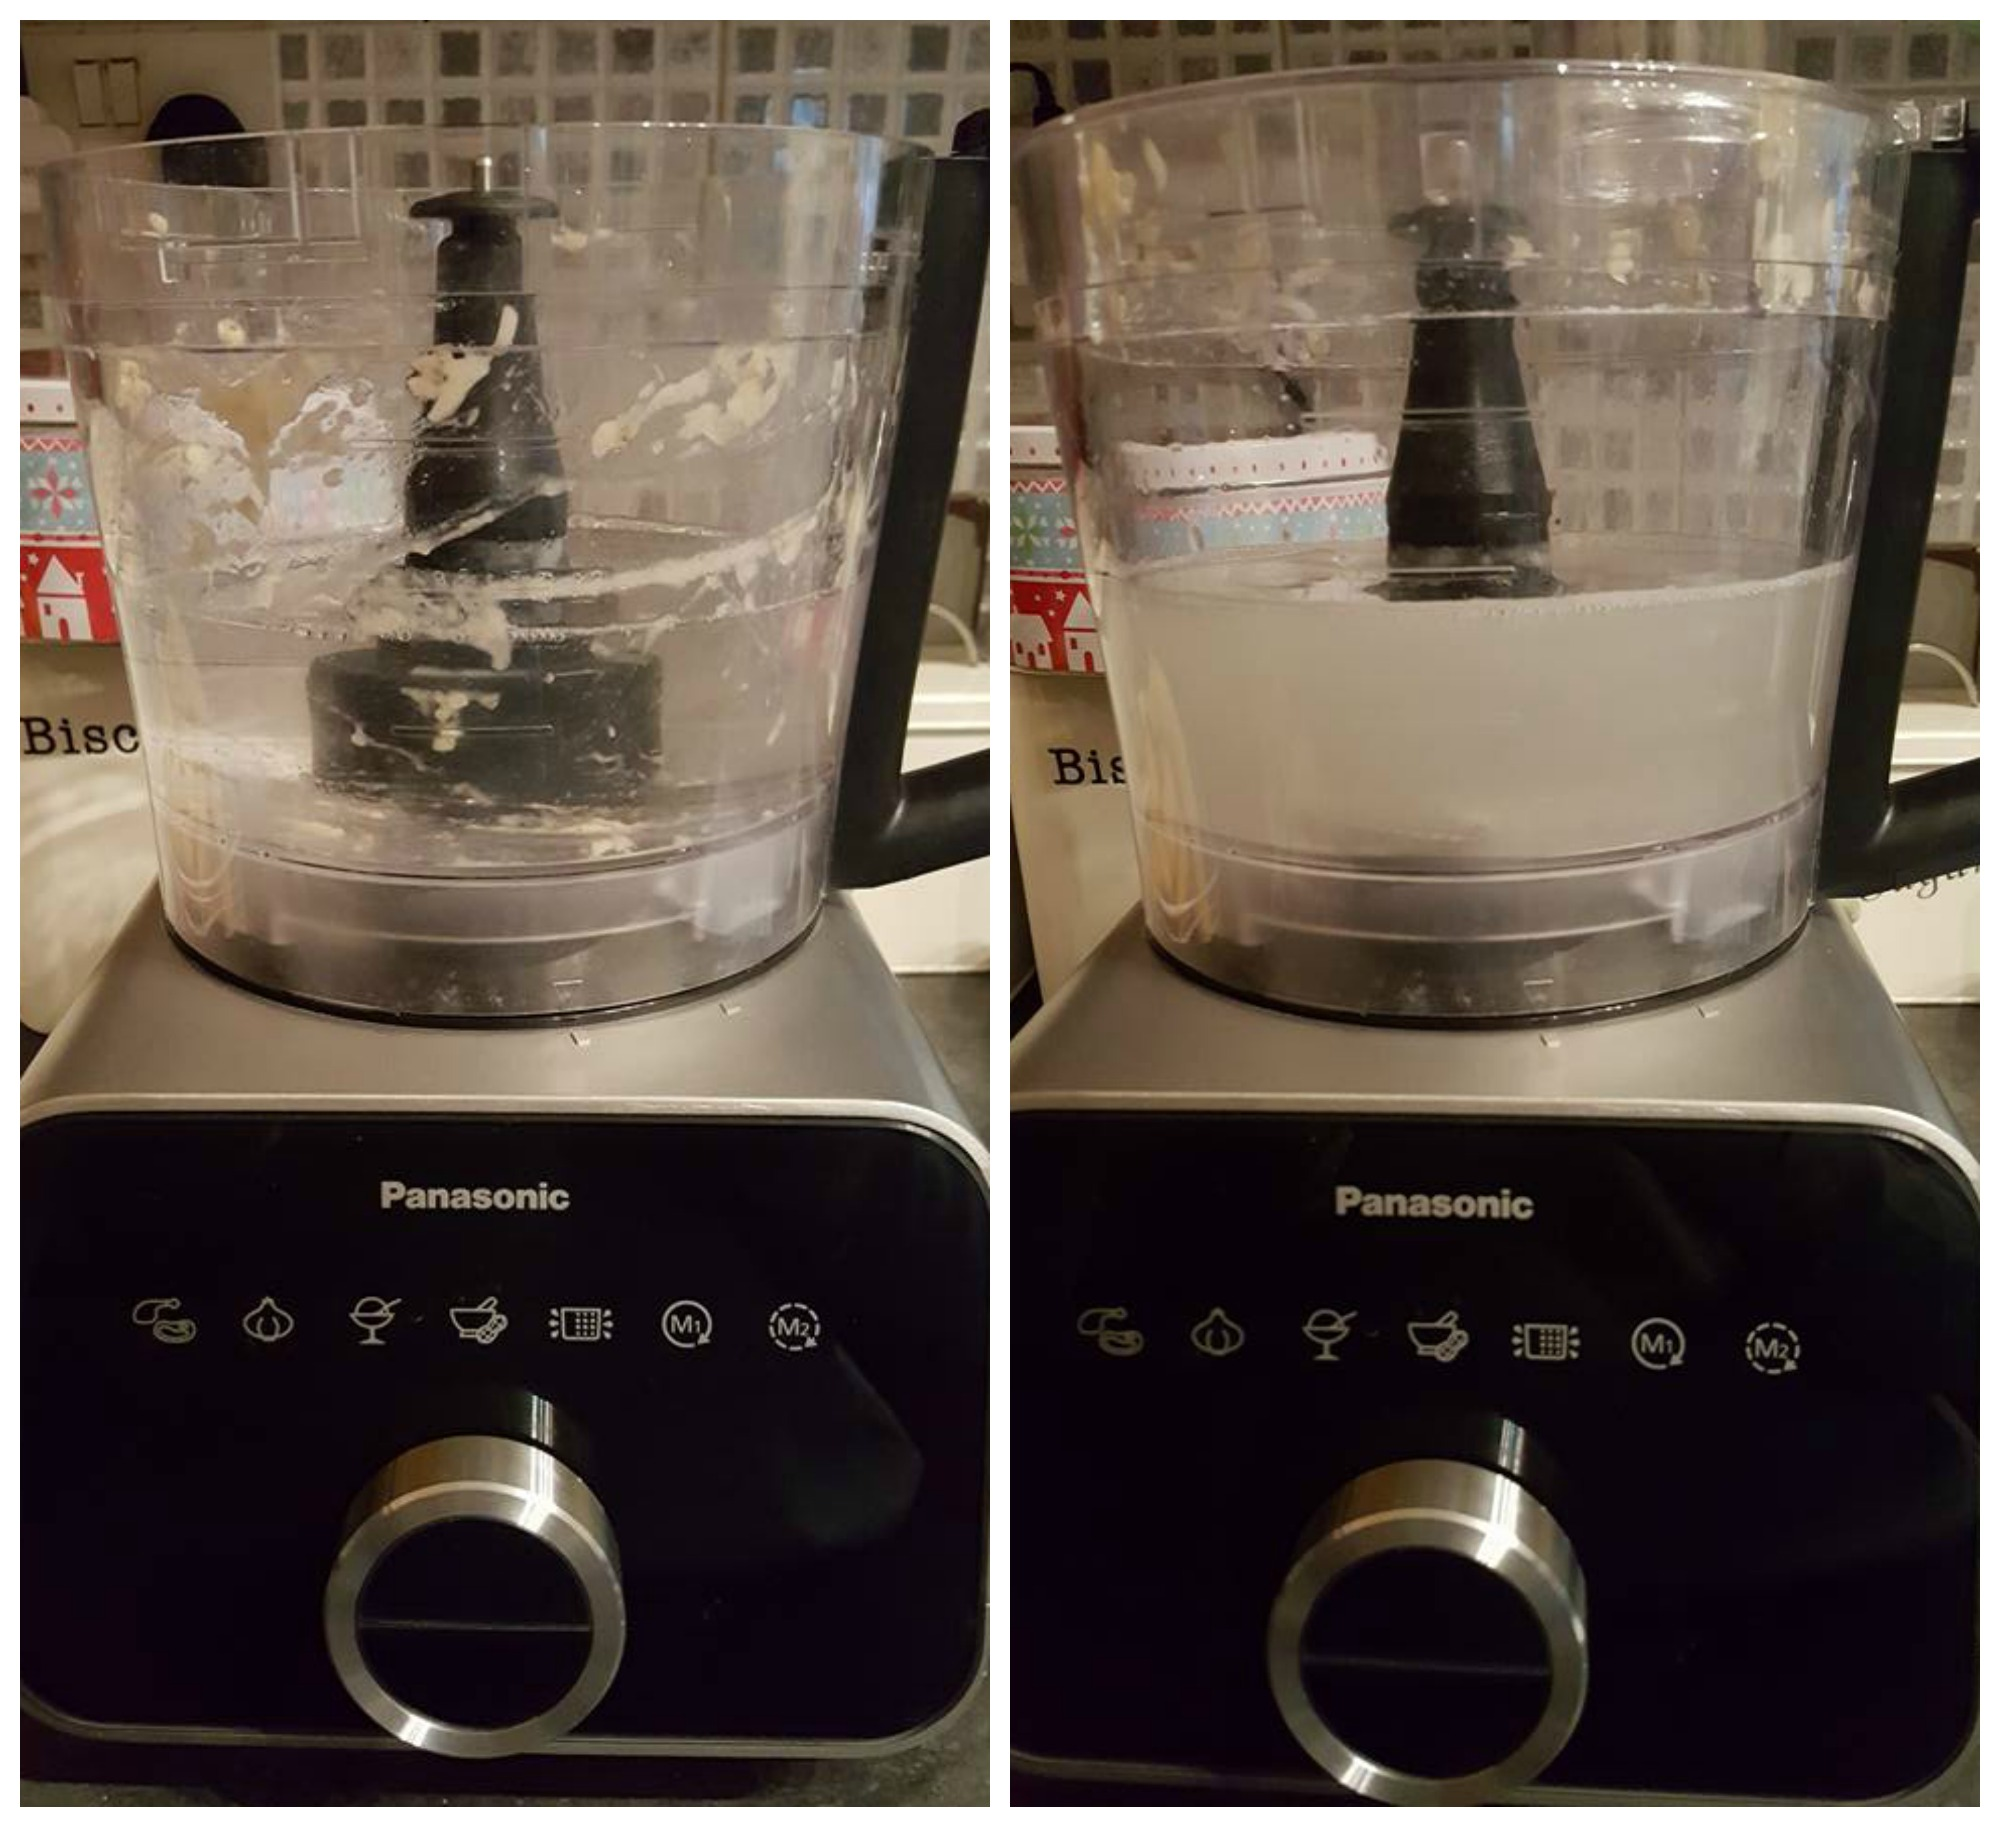 Panasonic precision gourmet blender pre cleaning function